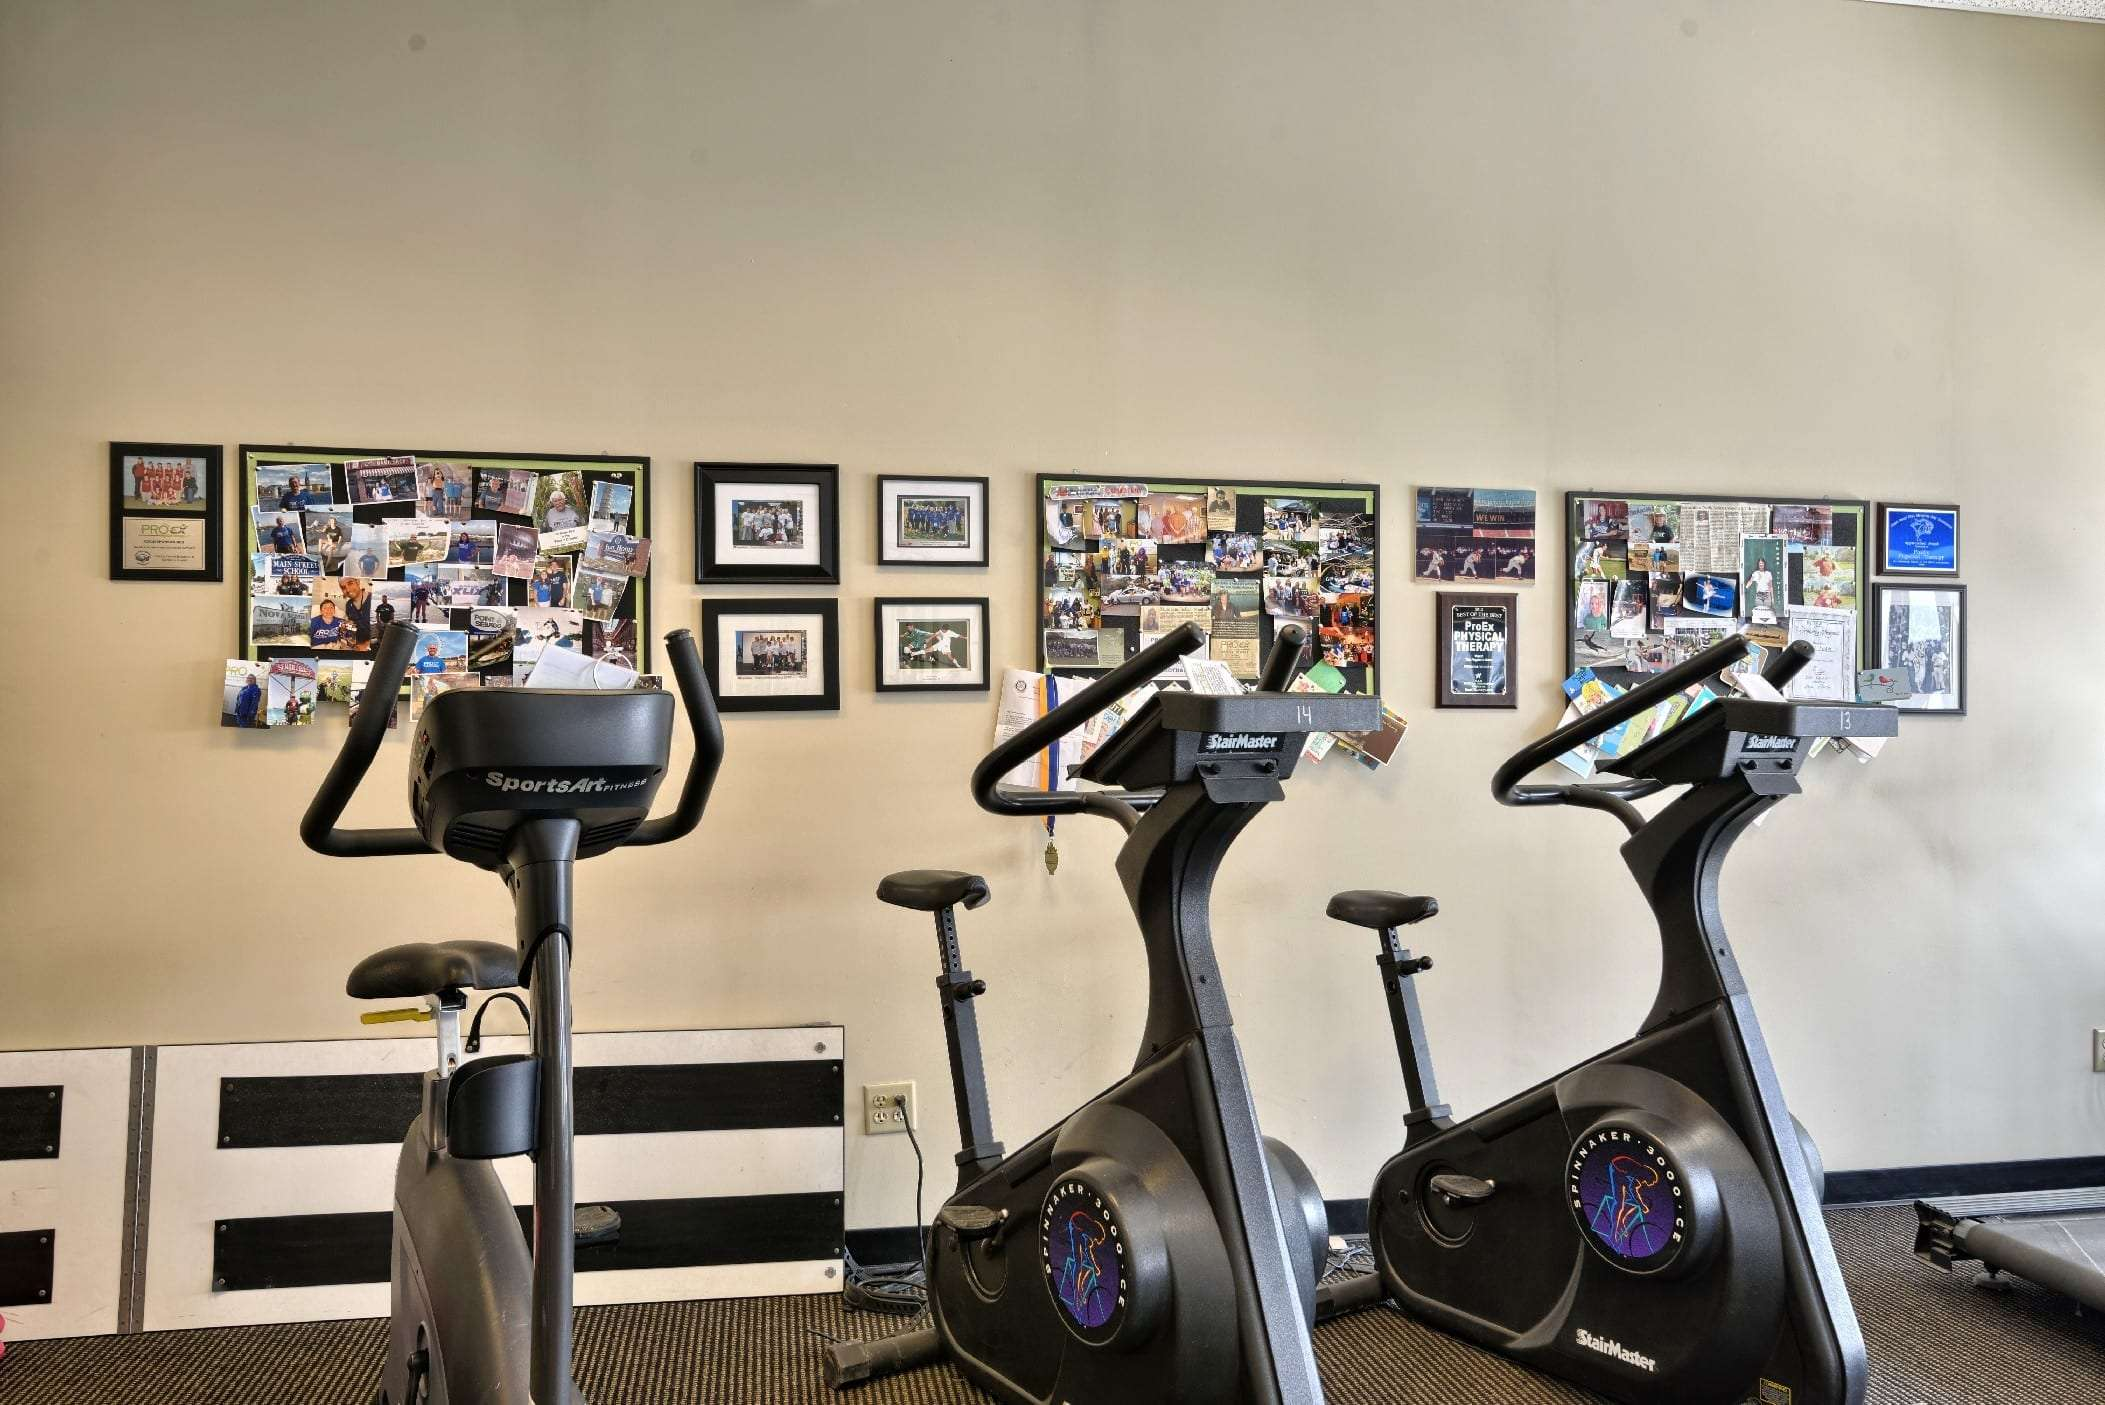 Here is an image of bikes used for physical therapy at our clinic in Stratham, New Hampshire.